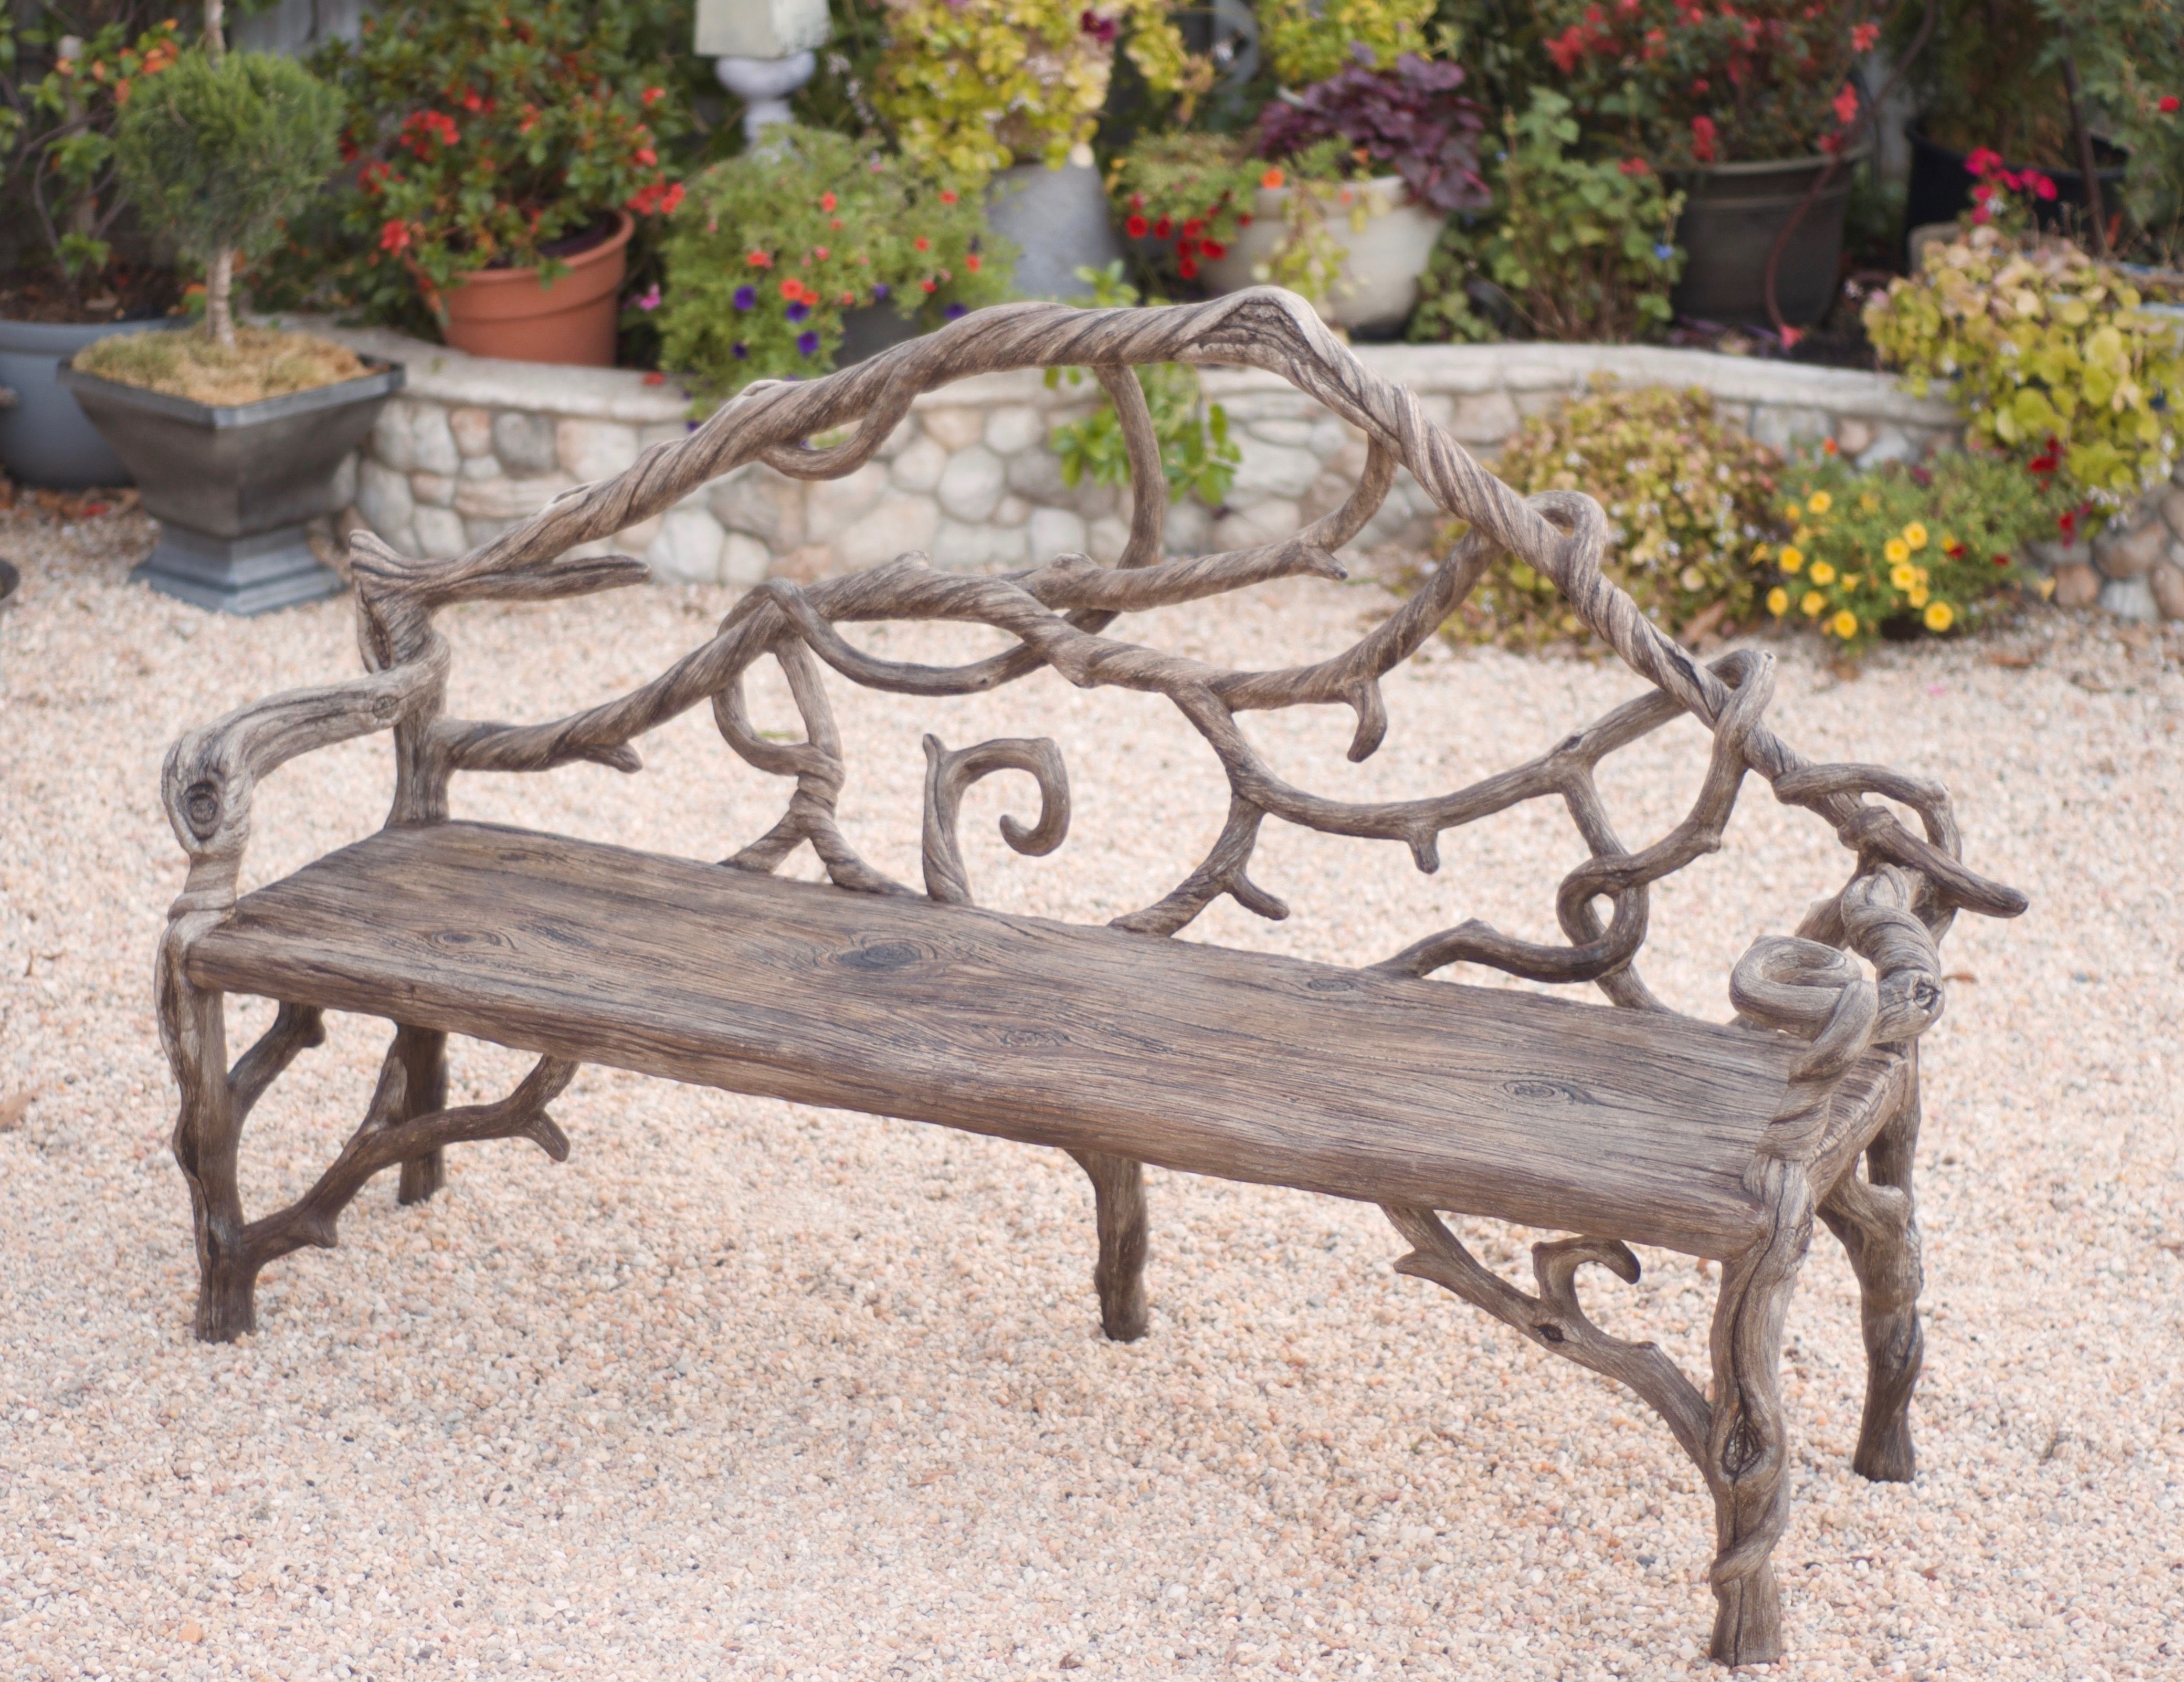 Diane Husson Creates Custom Concrete Faux Bois Garden Furniture Like This Bench For Her Nature Loving Clients